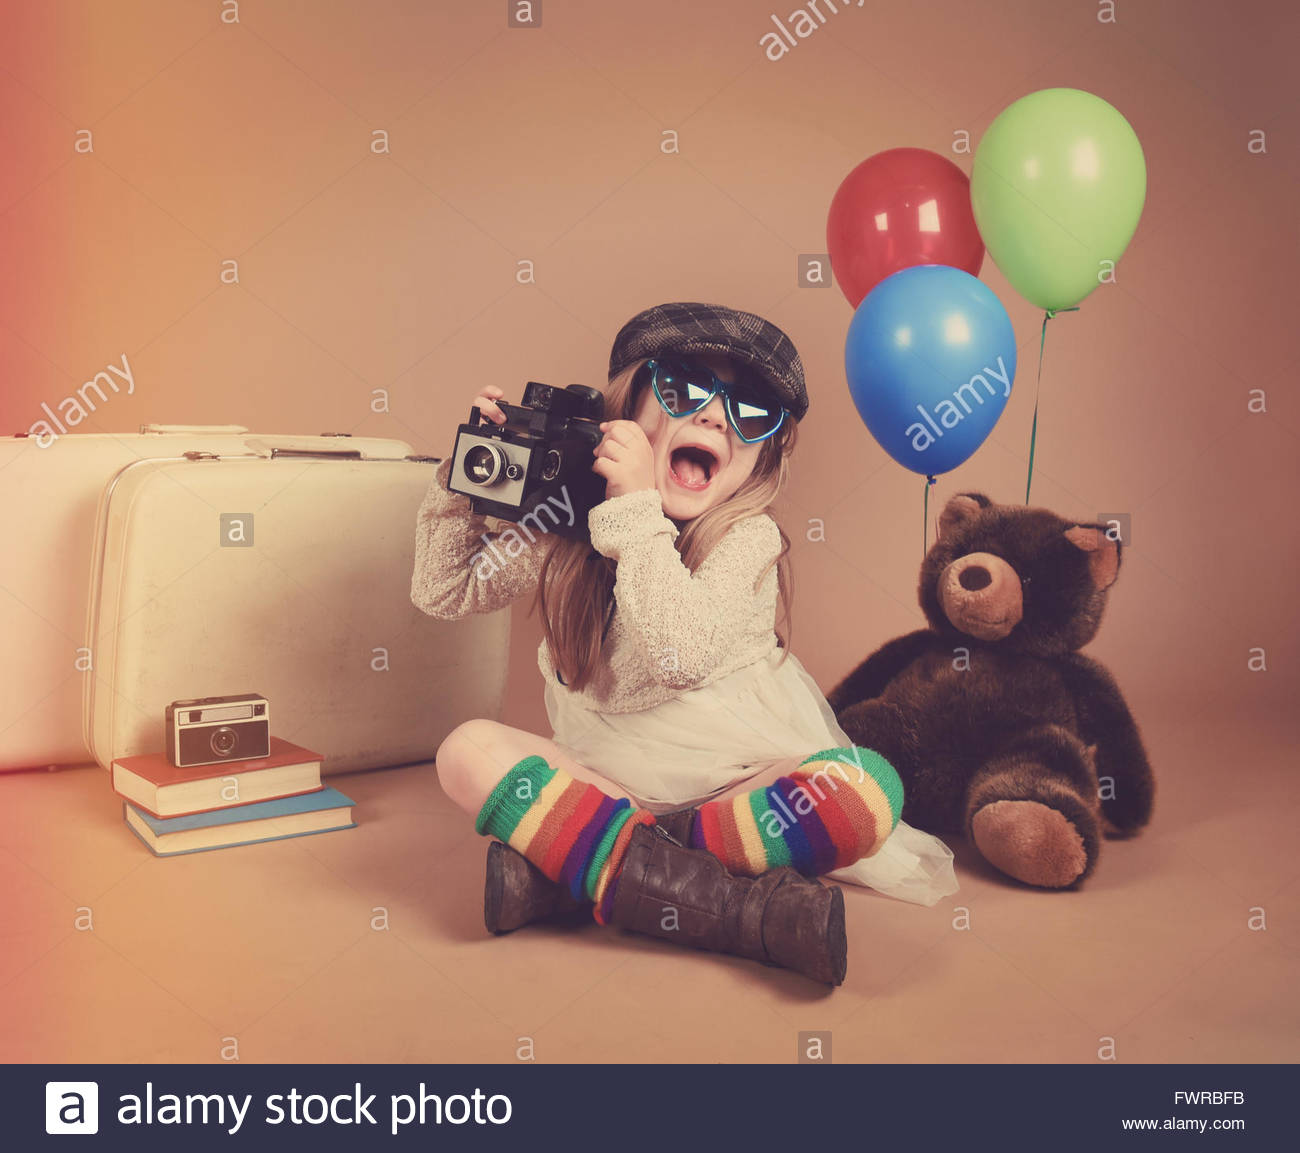 A photo of a vintage child taking a picture with an old camera with balloons and a teddy bear for an art or creative - Stock Image